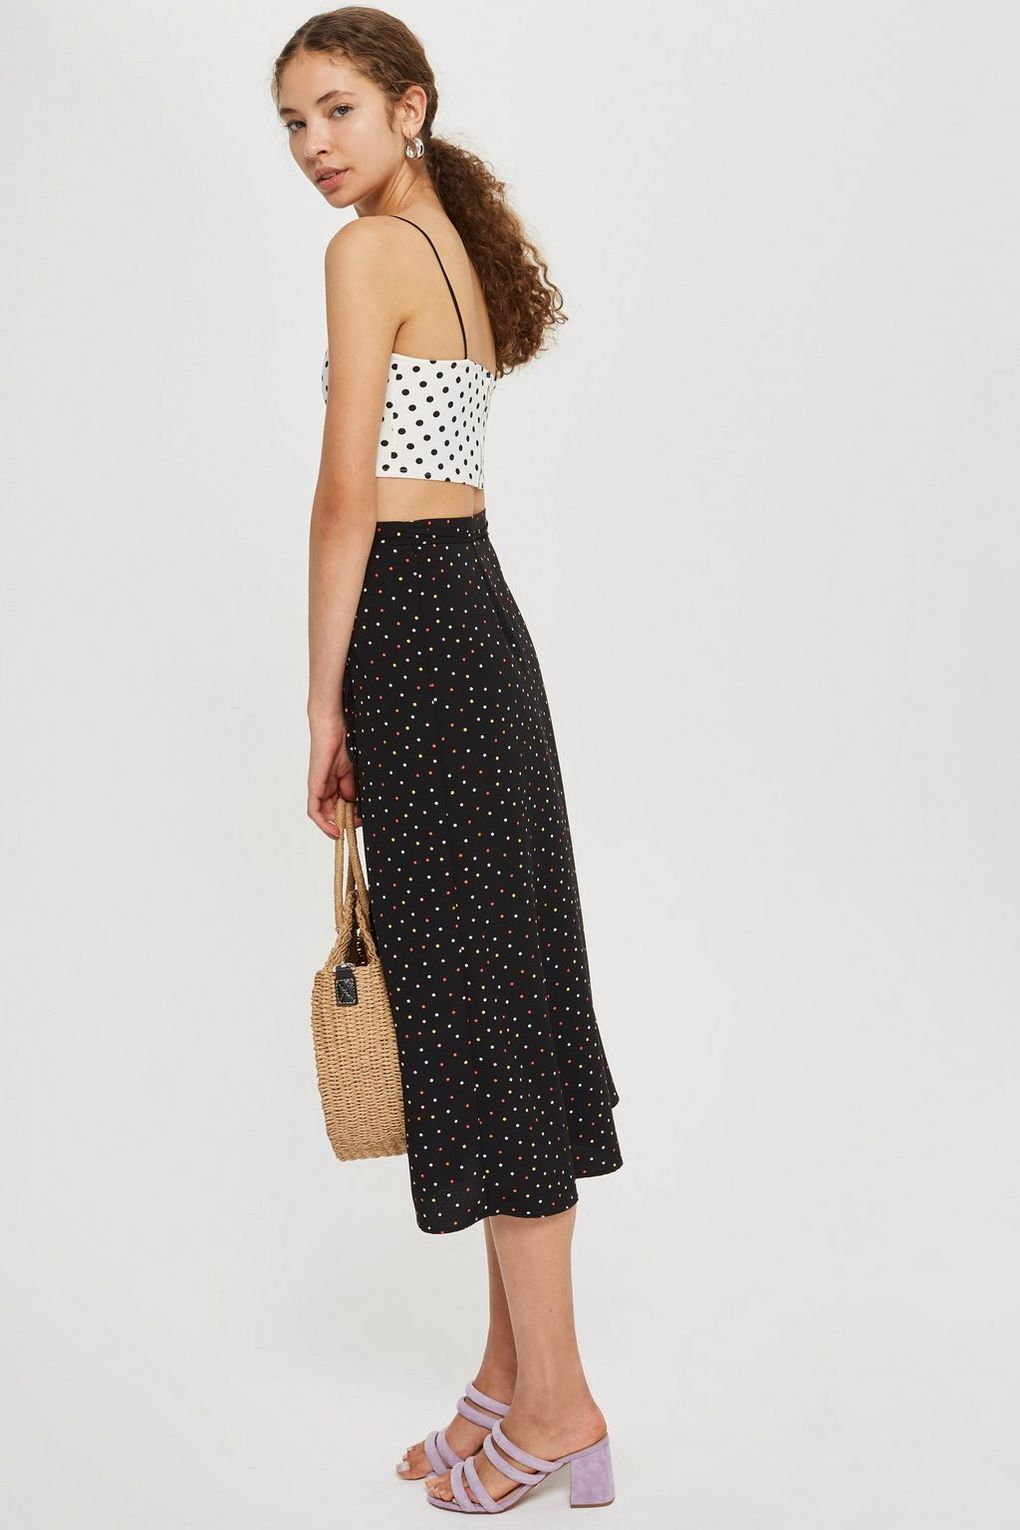 696241f246 Multi Spotted Button Midi Skirt | 2 0 1 8 | Midi Skirt, Buttons, Skirts